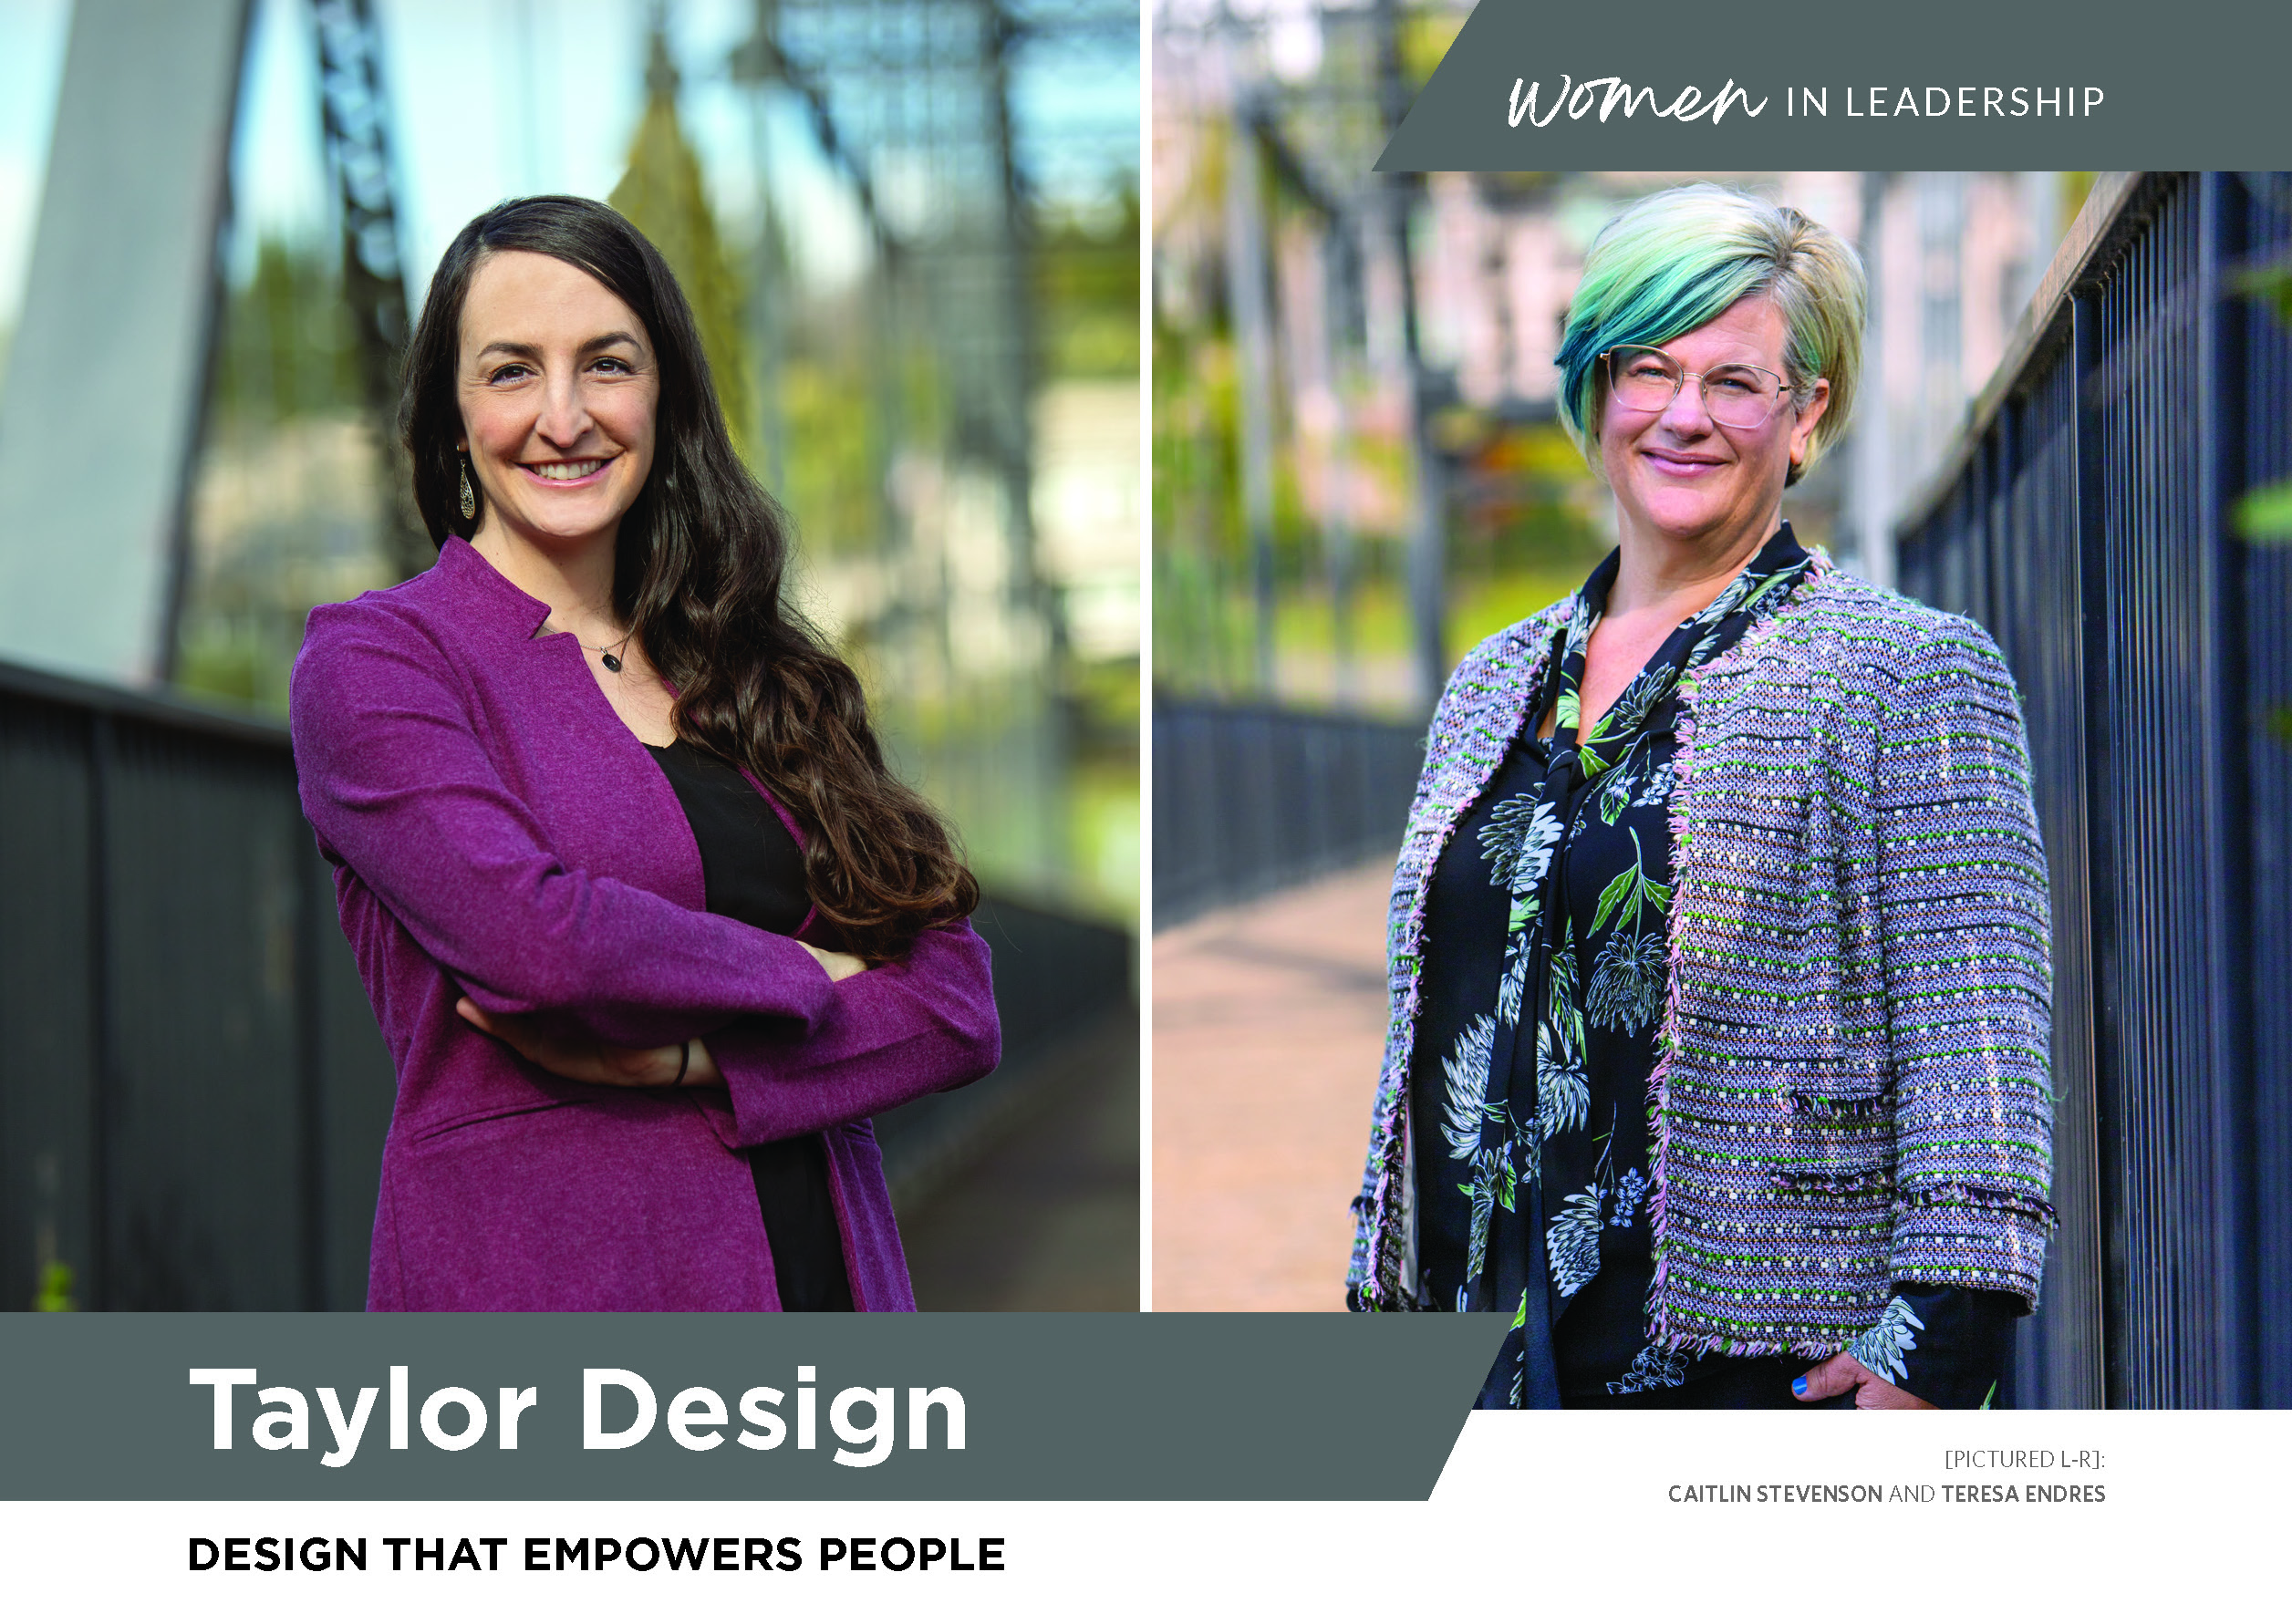 Taylor Design - Women in Leadership